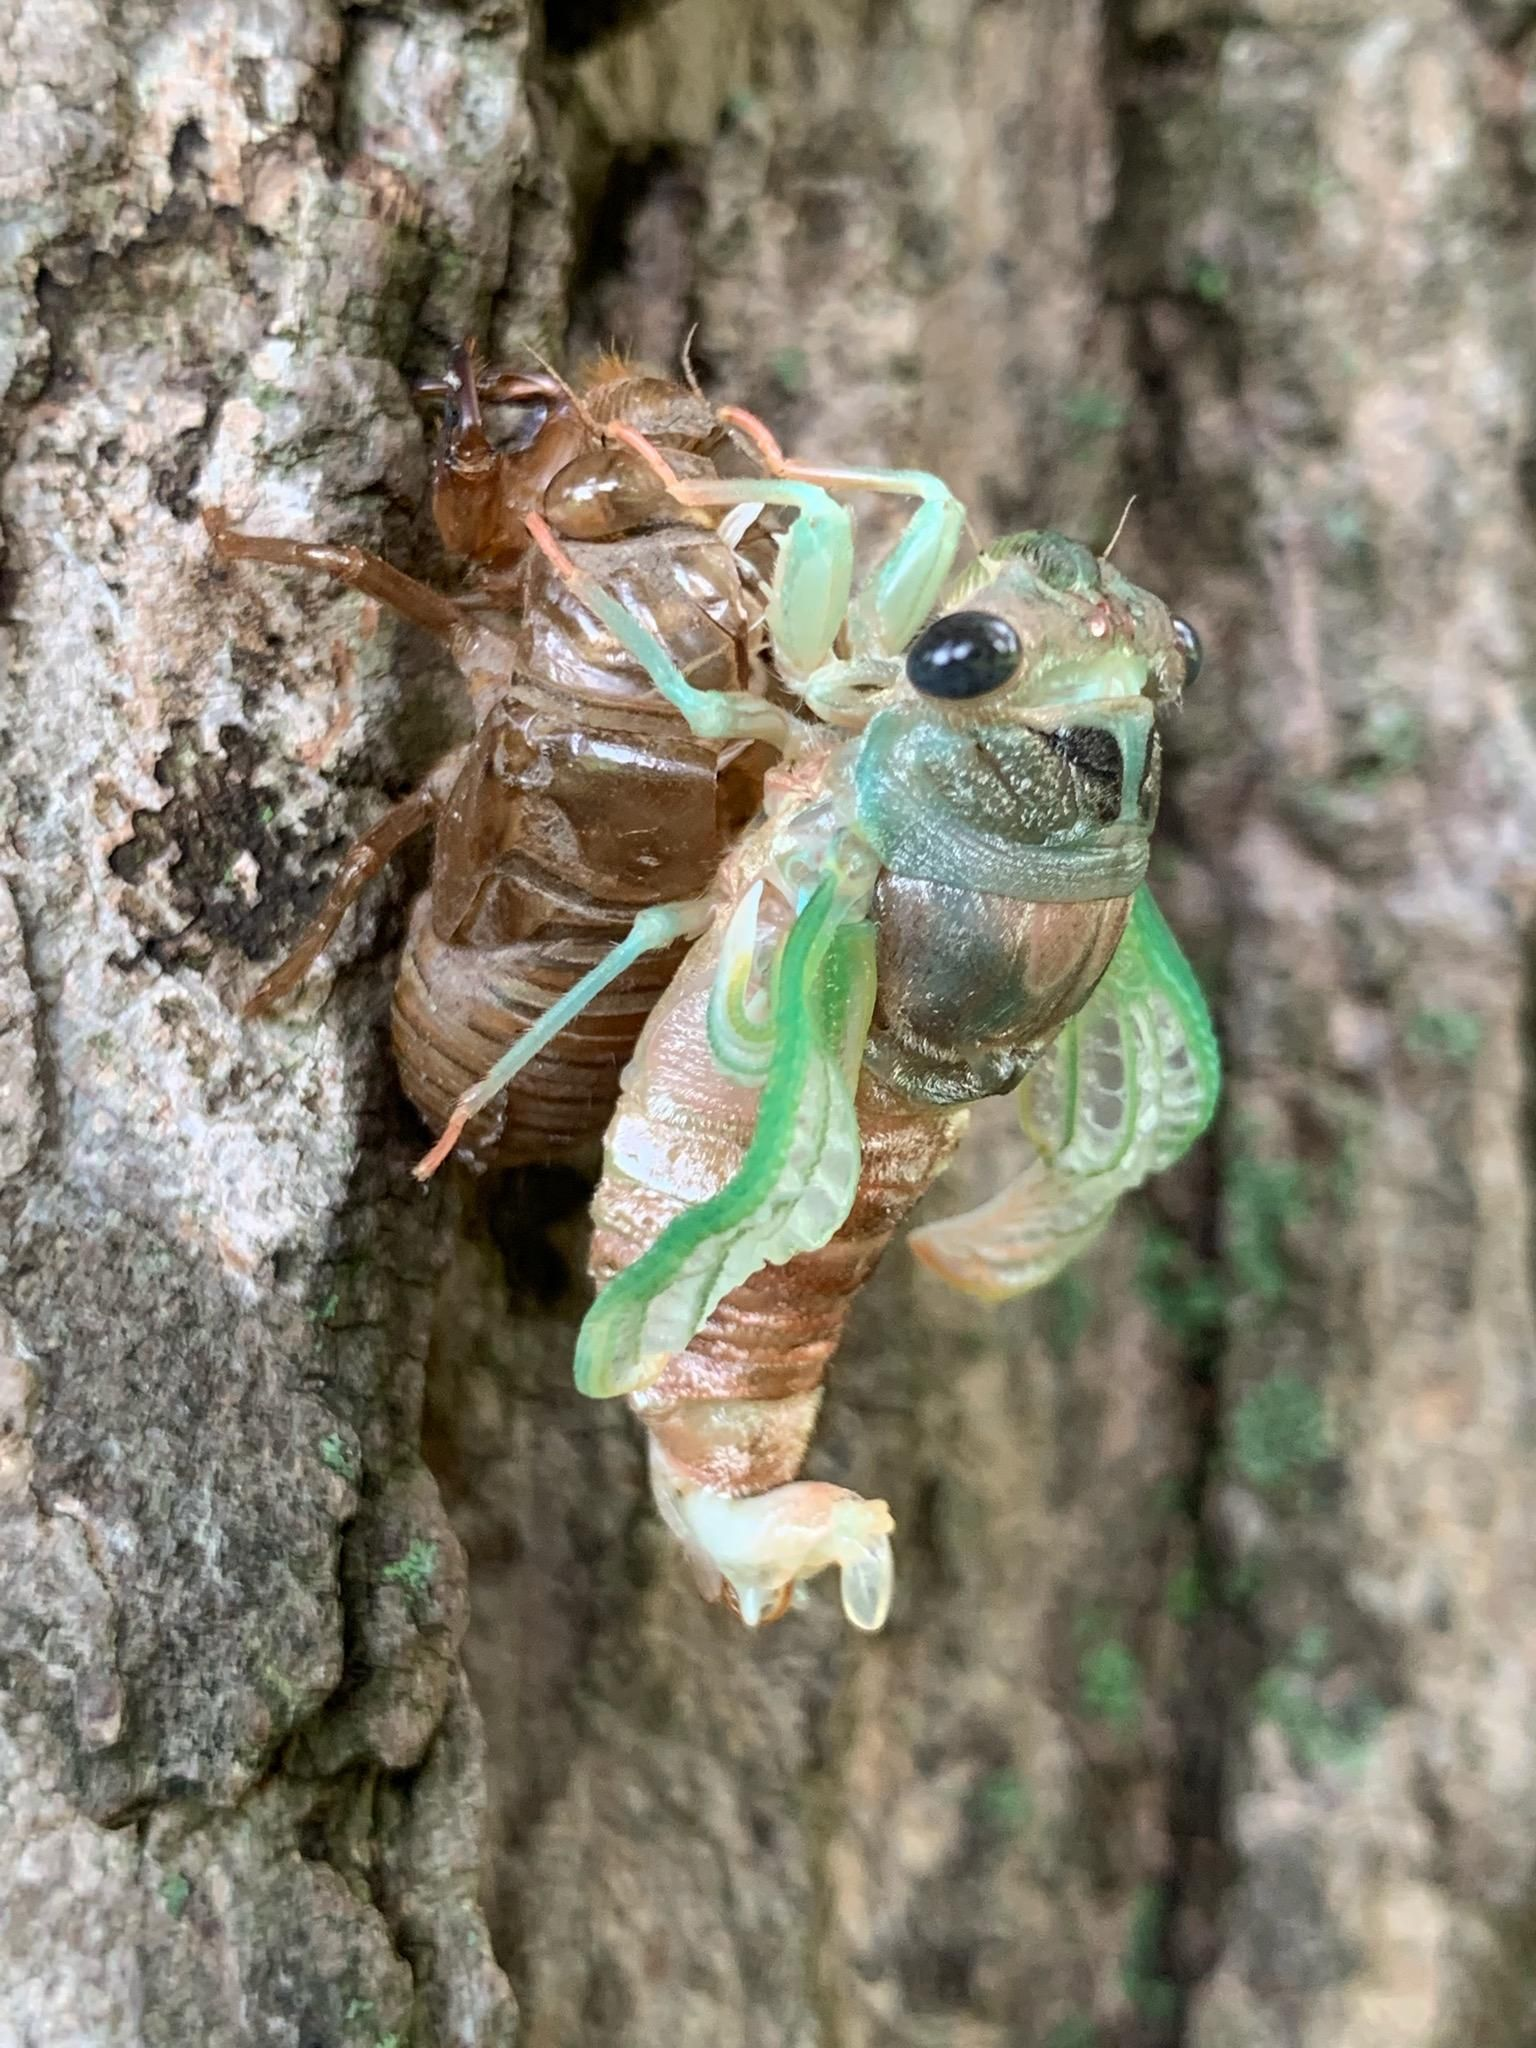 A Cicada molting it's exoskeleton after years of living